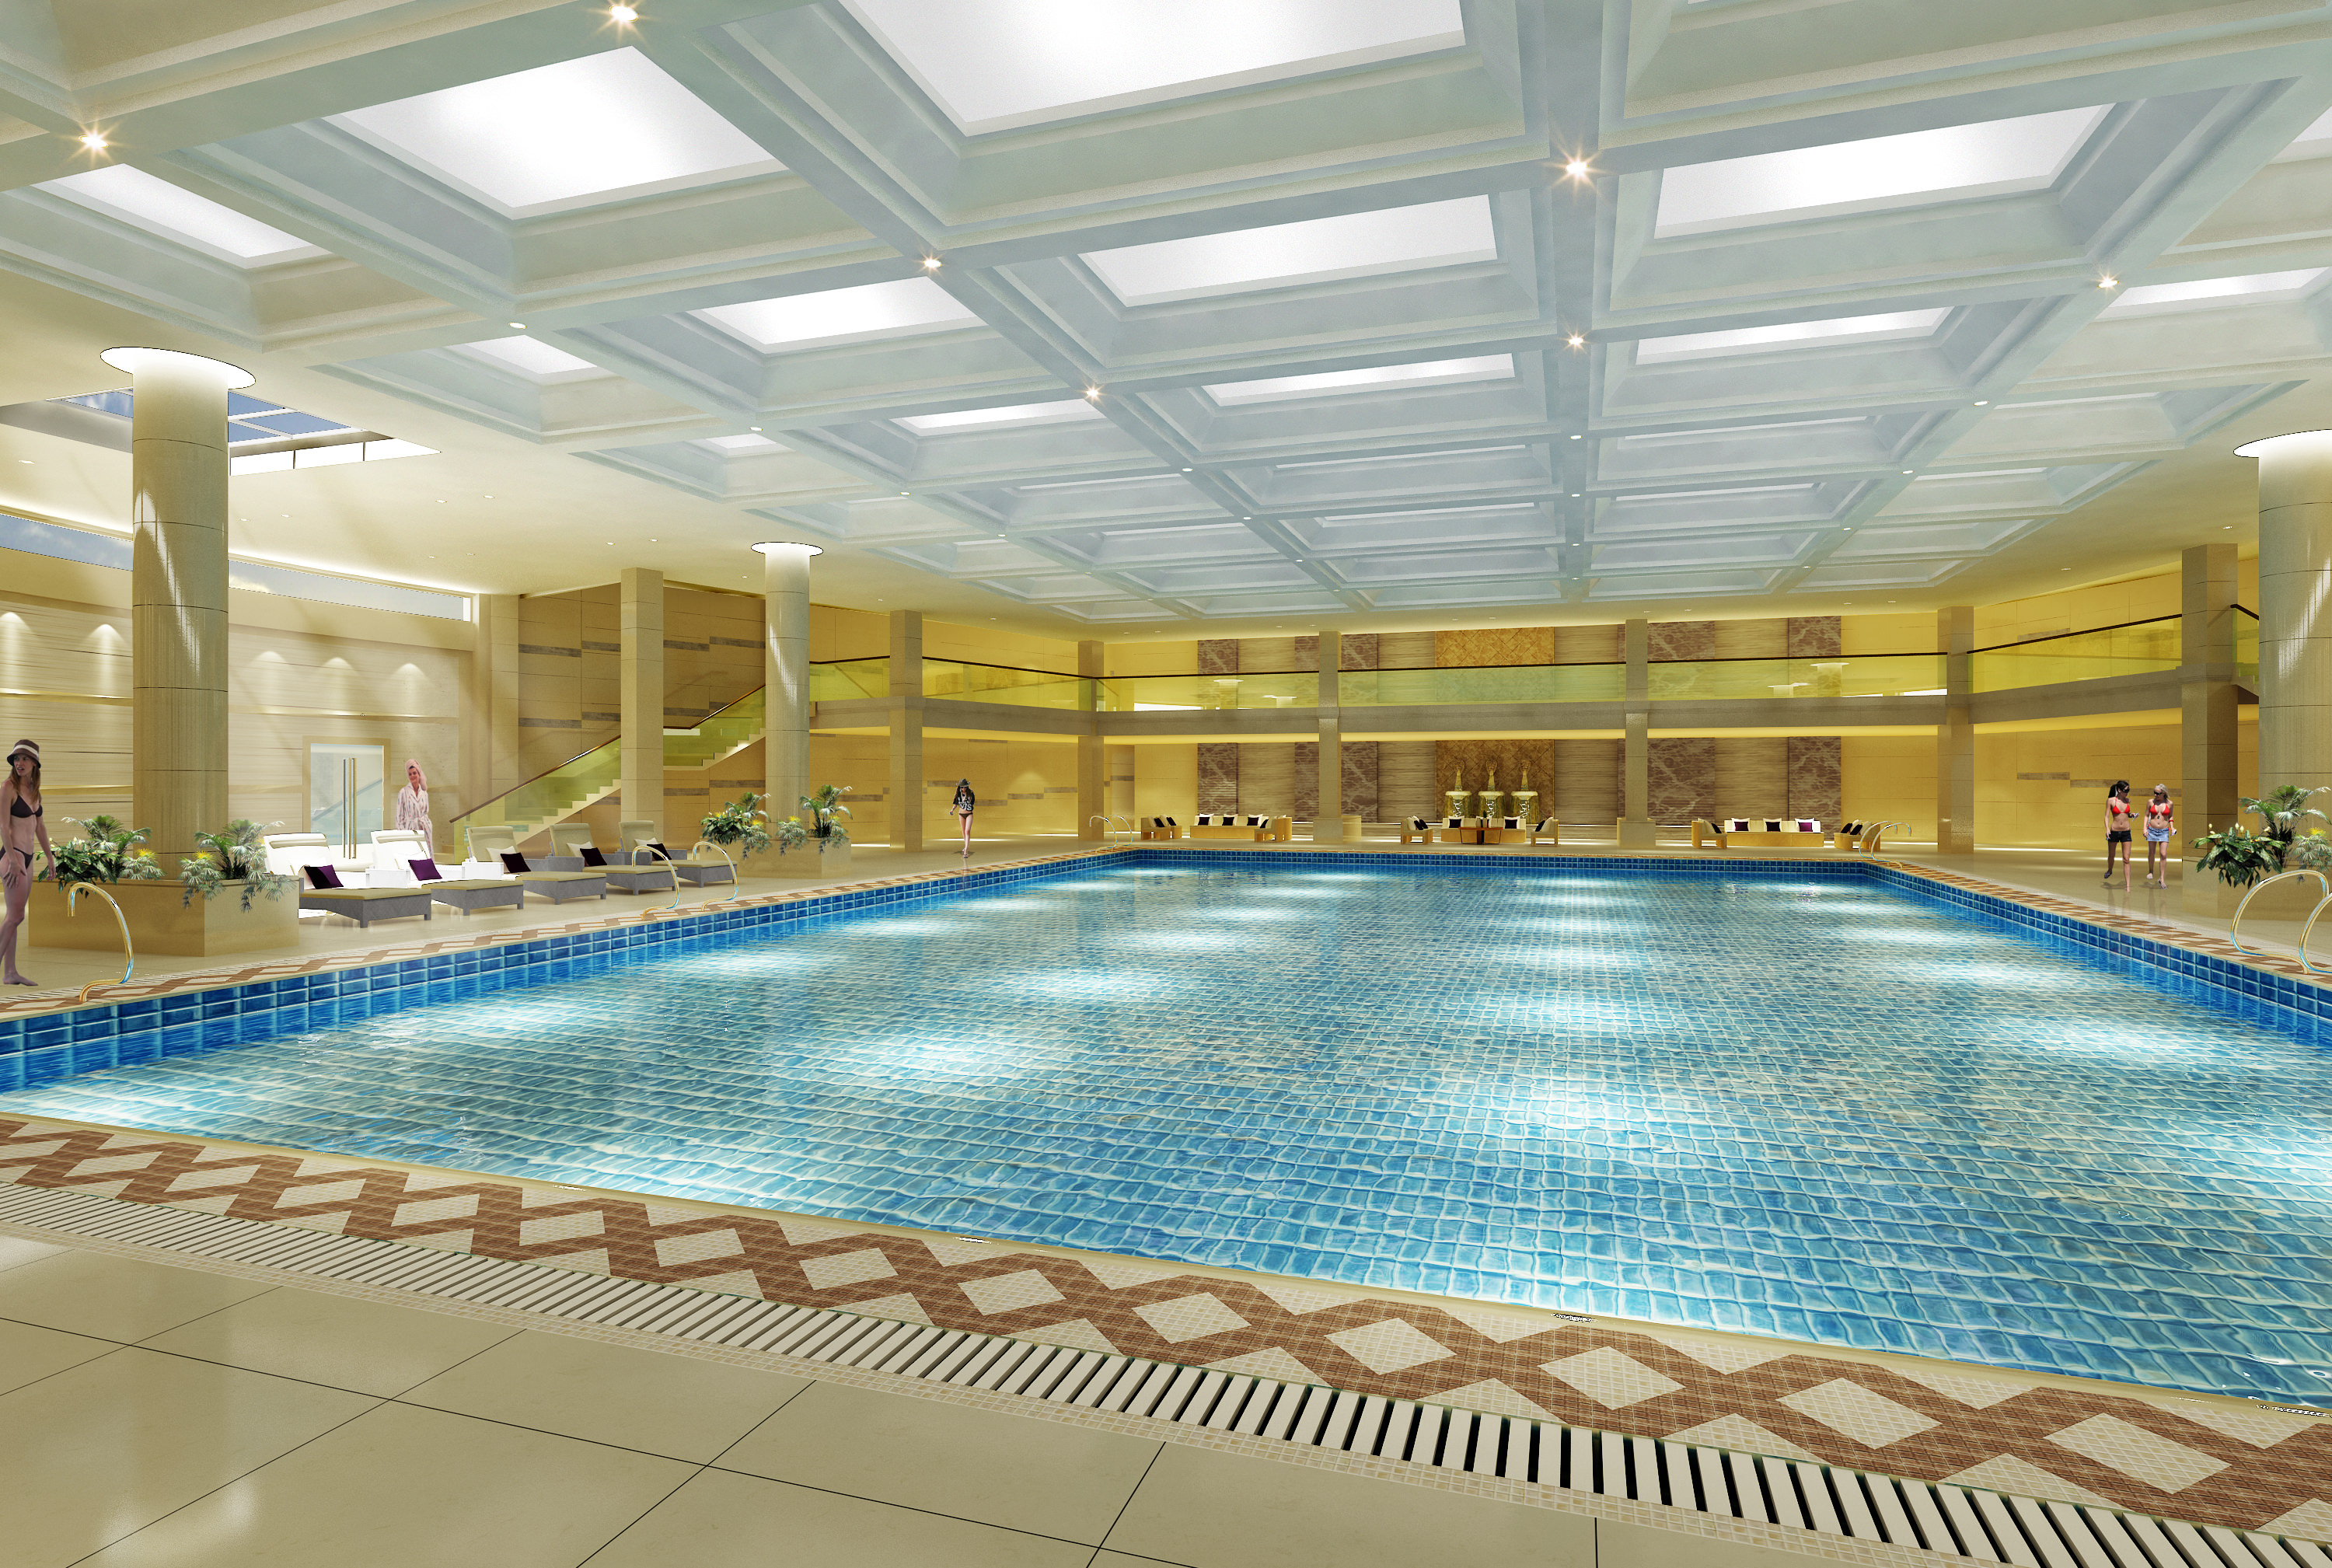 Swimming pool 3d model max for Swimming pool stores in my area